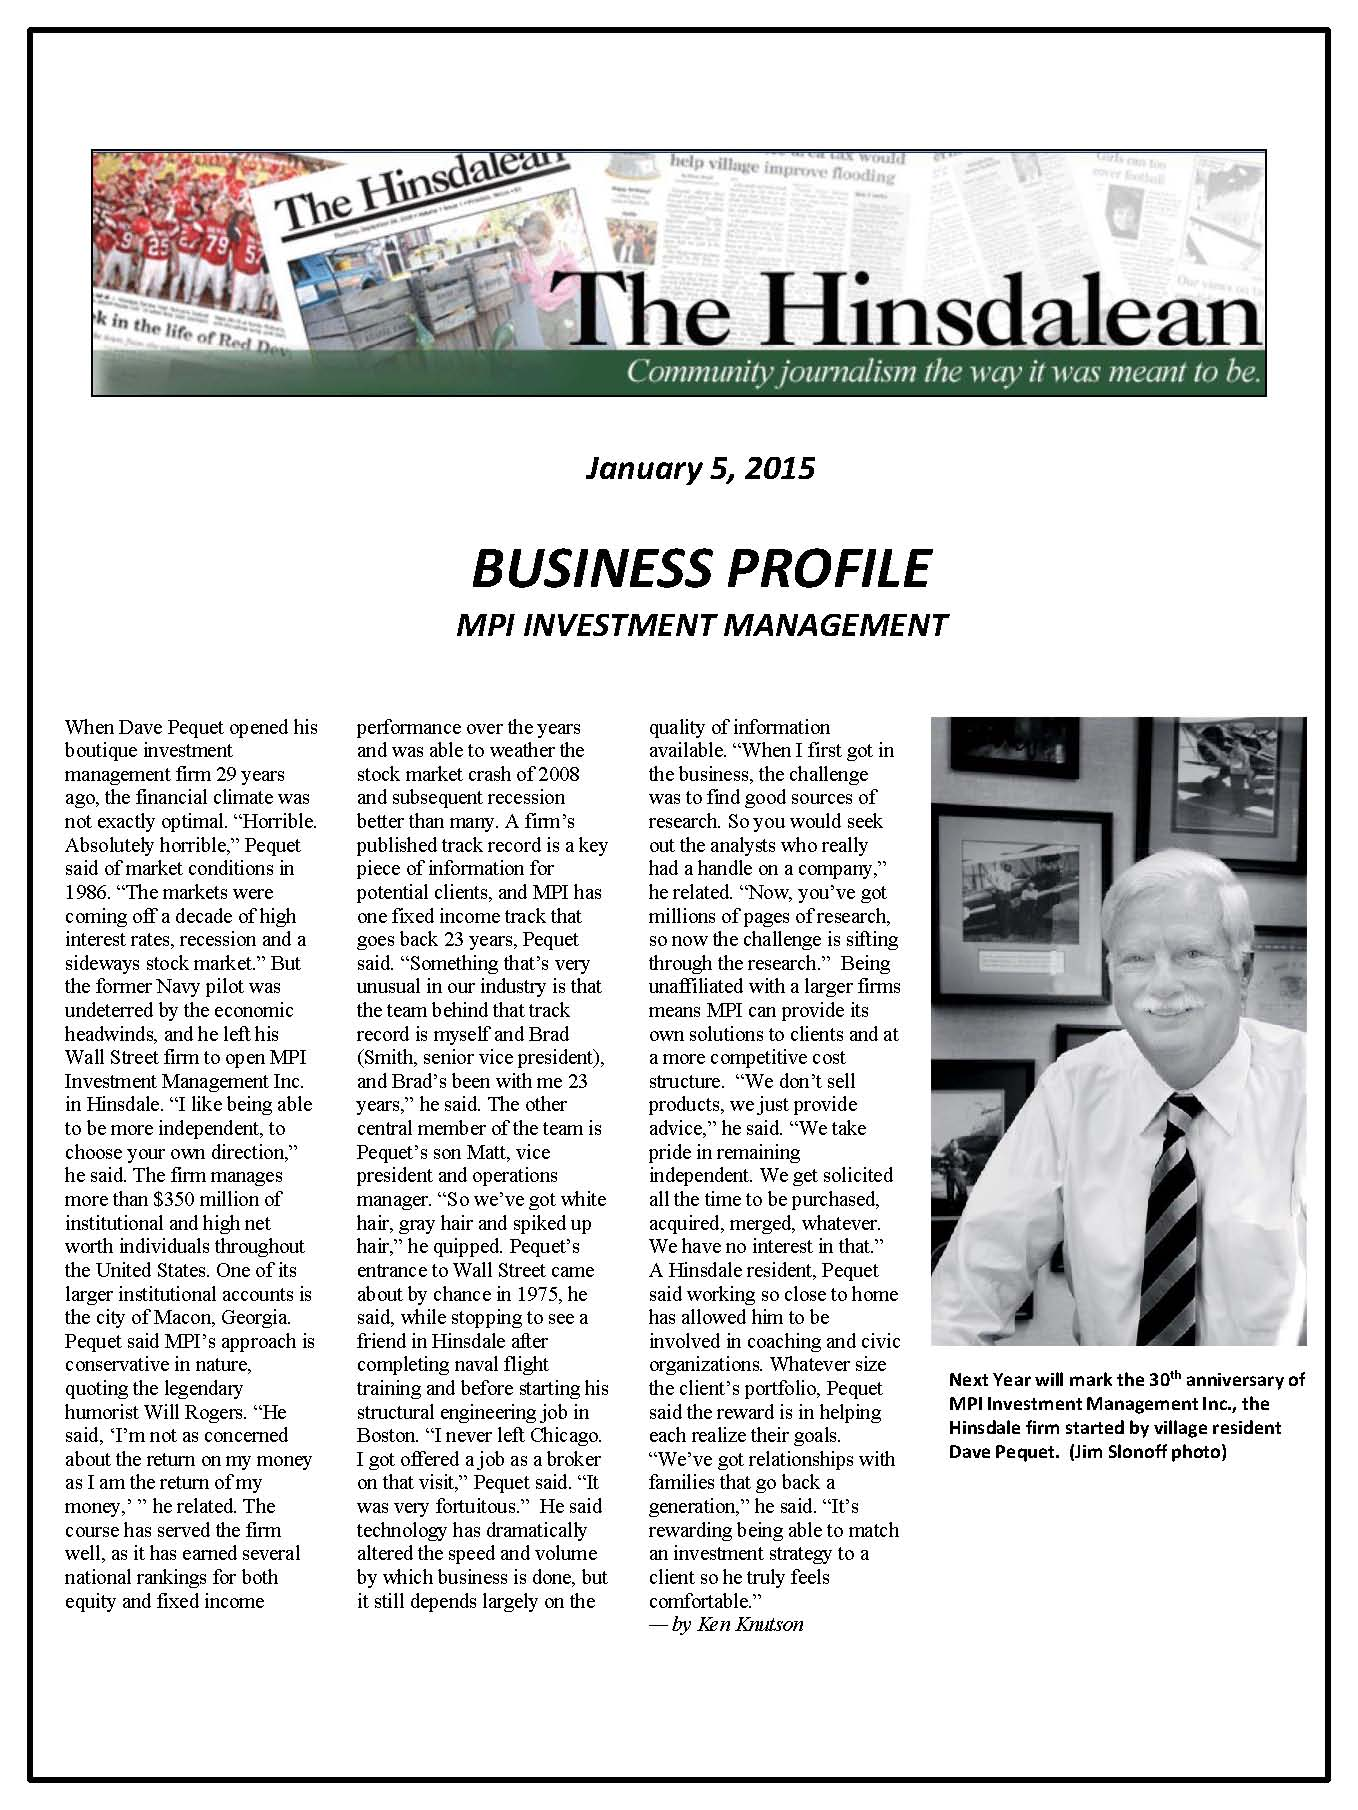 Hinsdalean Business Profile 1-5-15